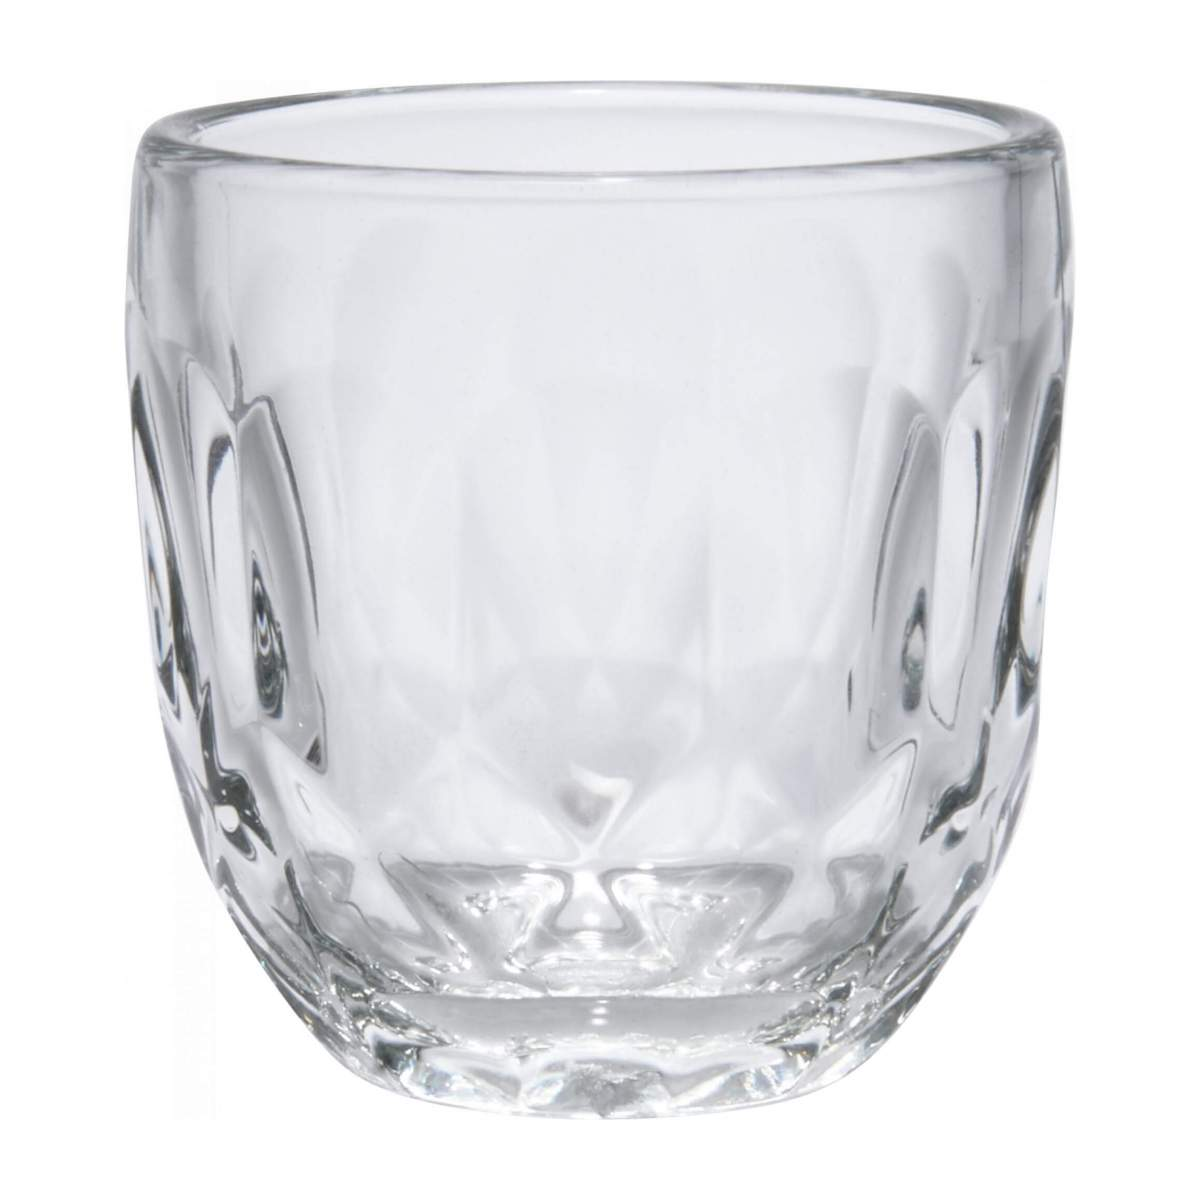 Expresso cup made of glass with facets n°1